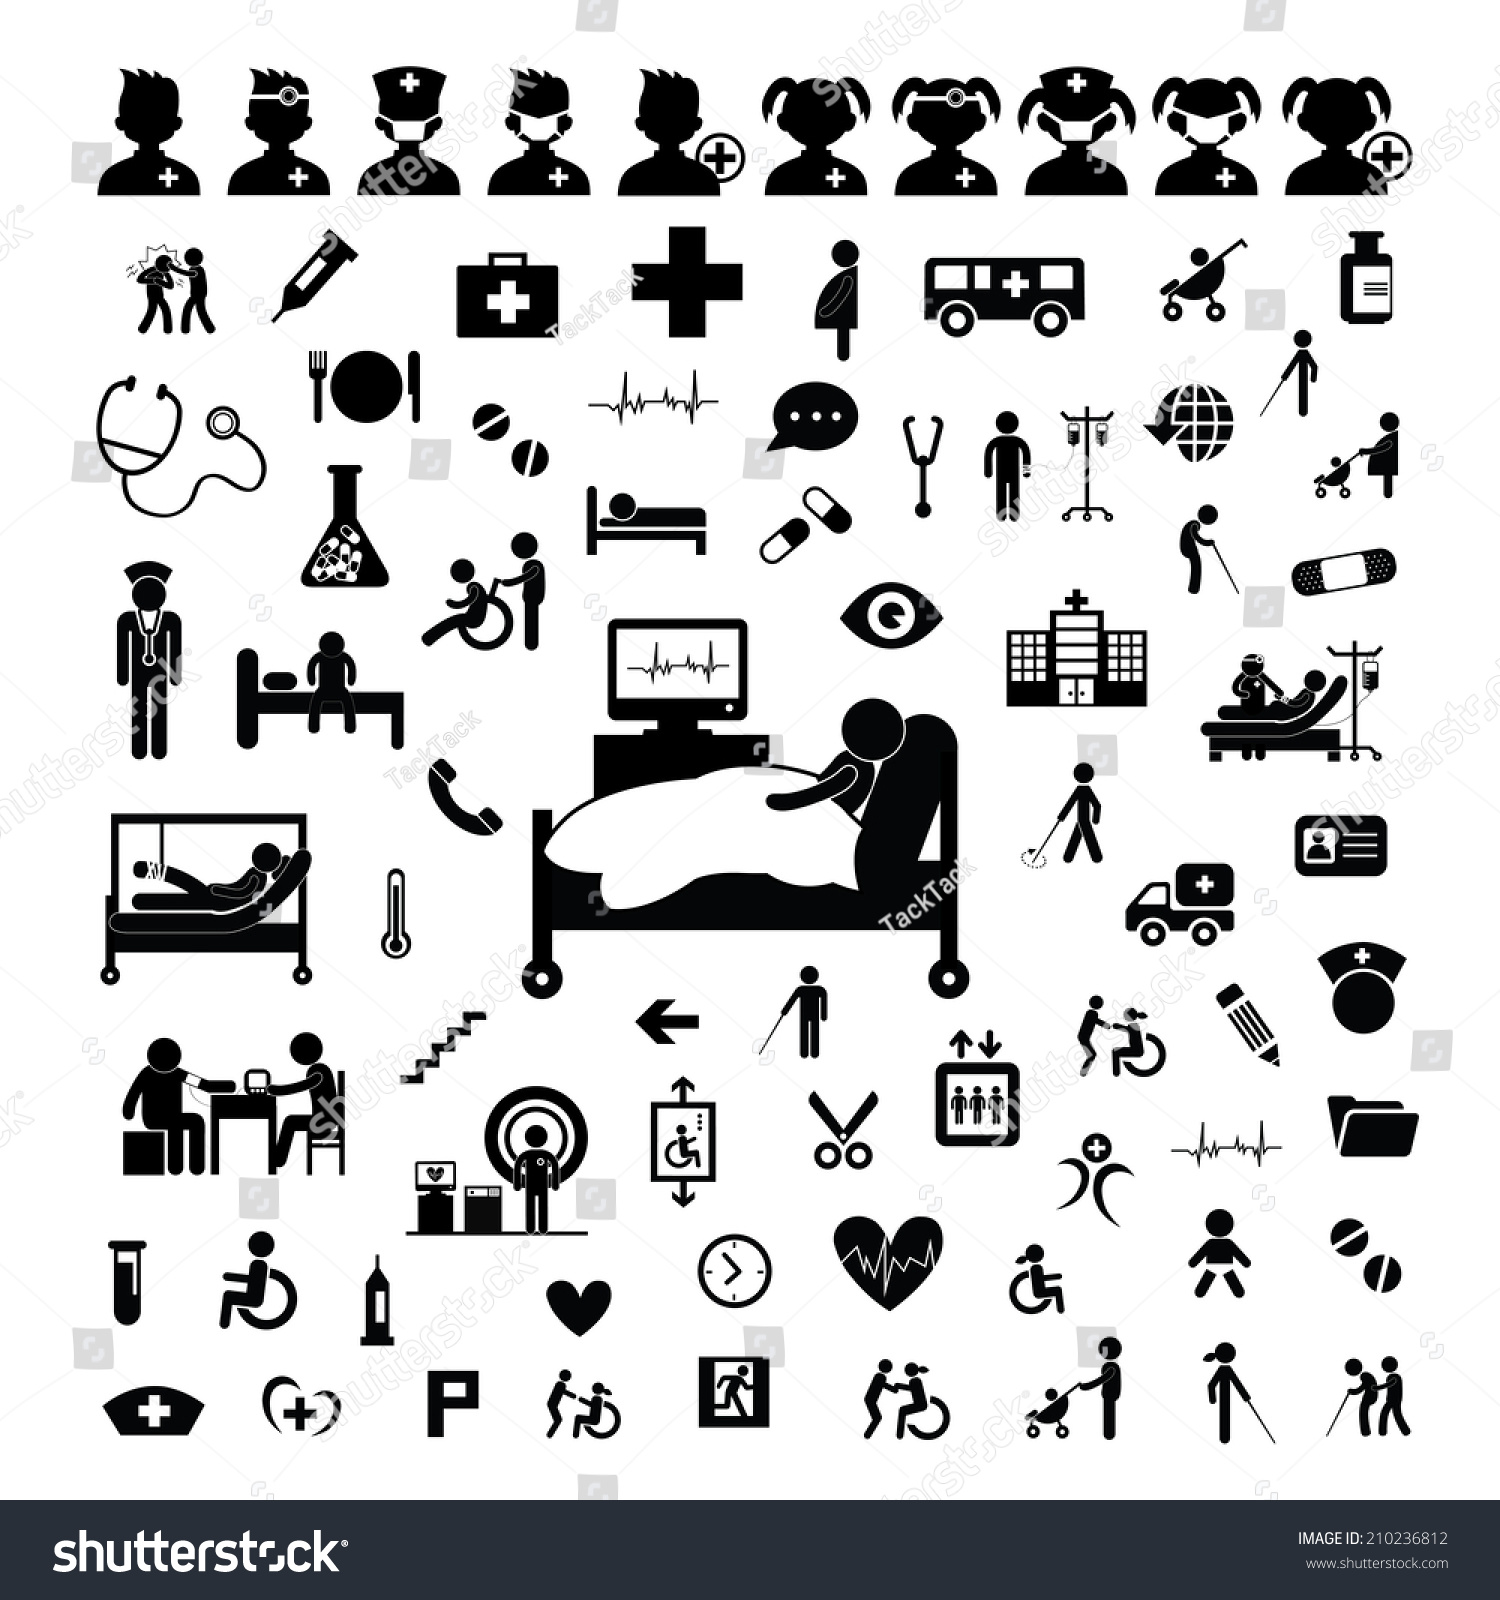 Doctor Icon And Hospital On White Background Stock Vector Illustration ...